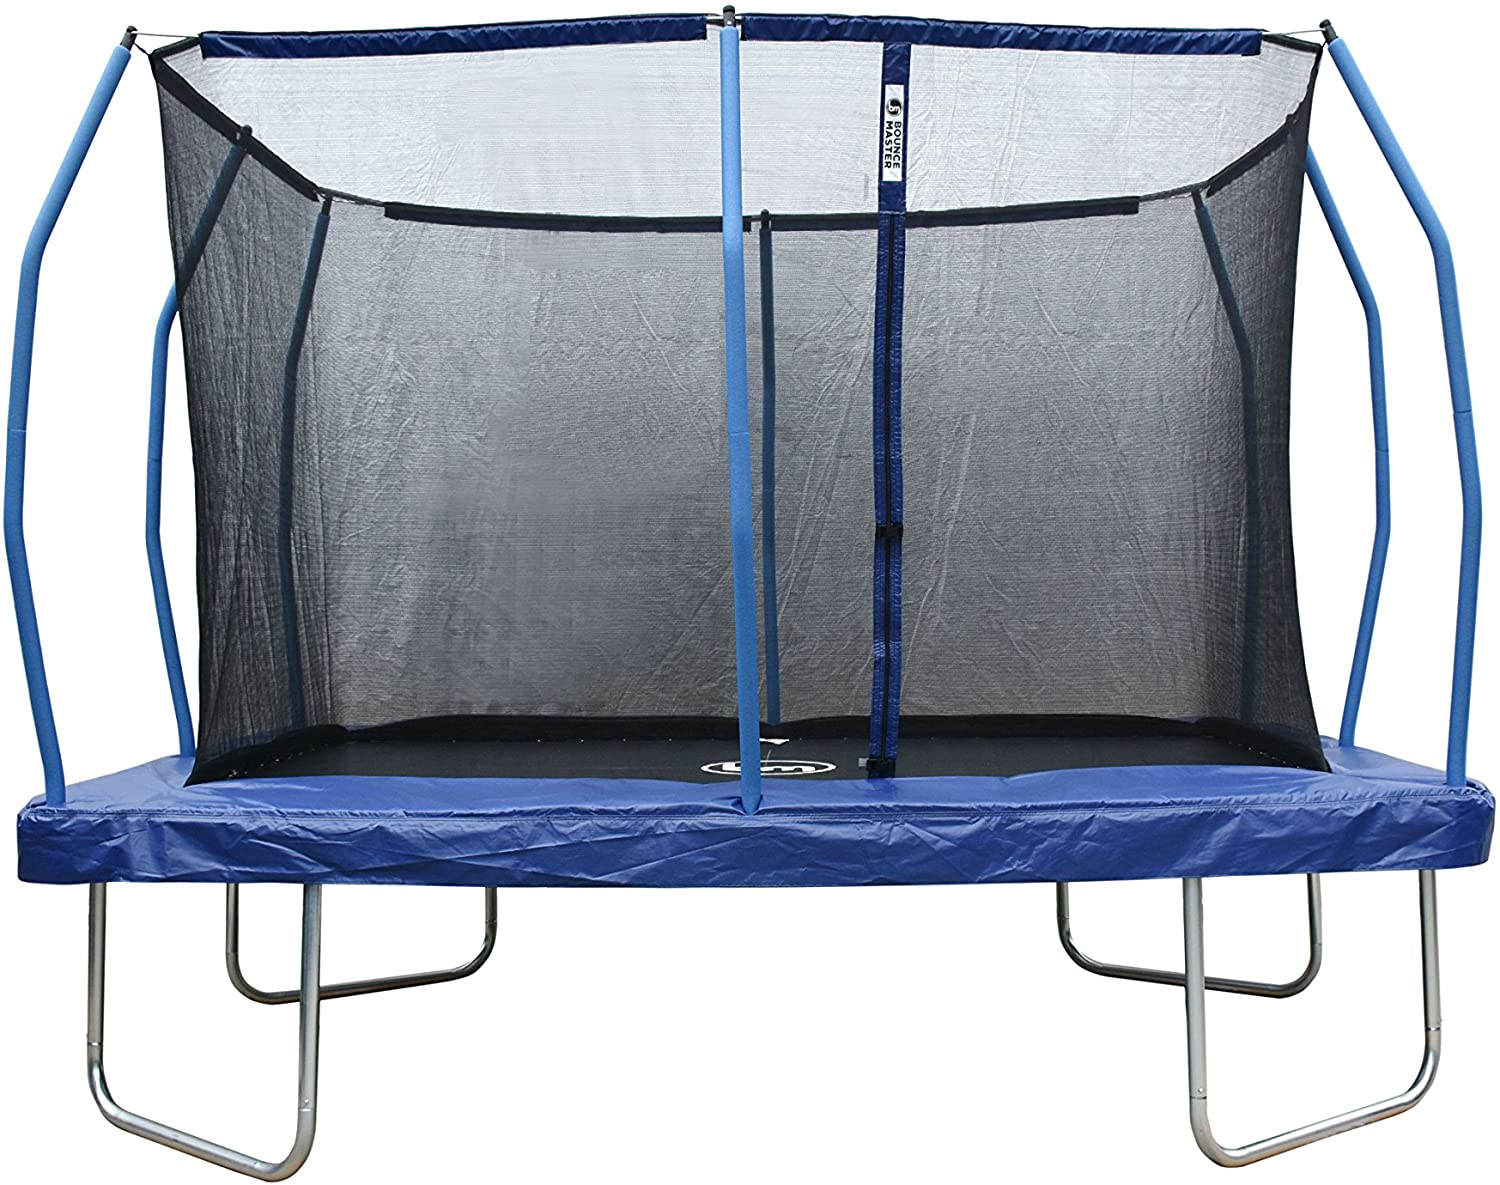 12ft. x 8ft. Rectangle Trampoline & Safety Enclosure- ASTM Safety Approved